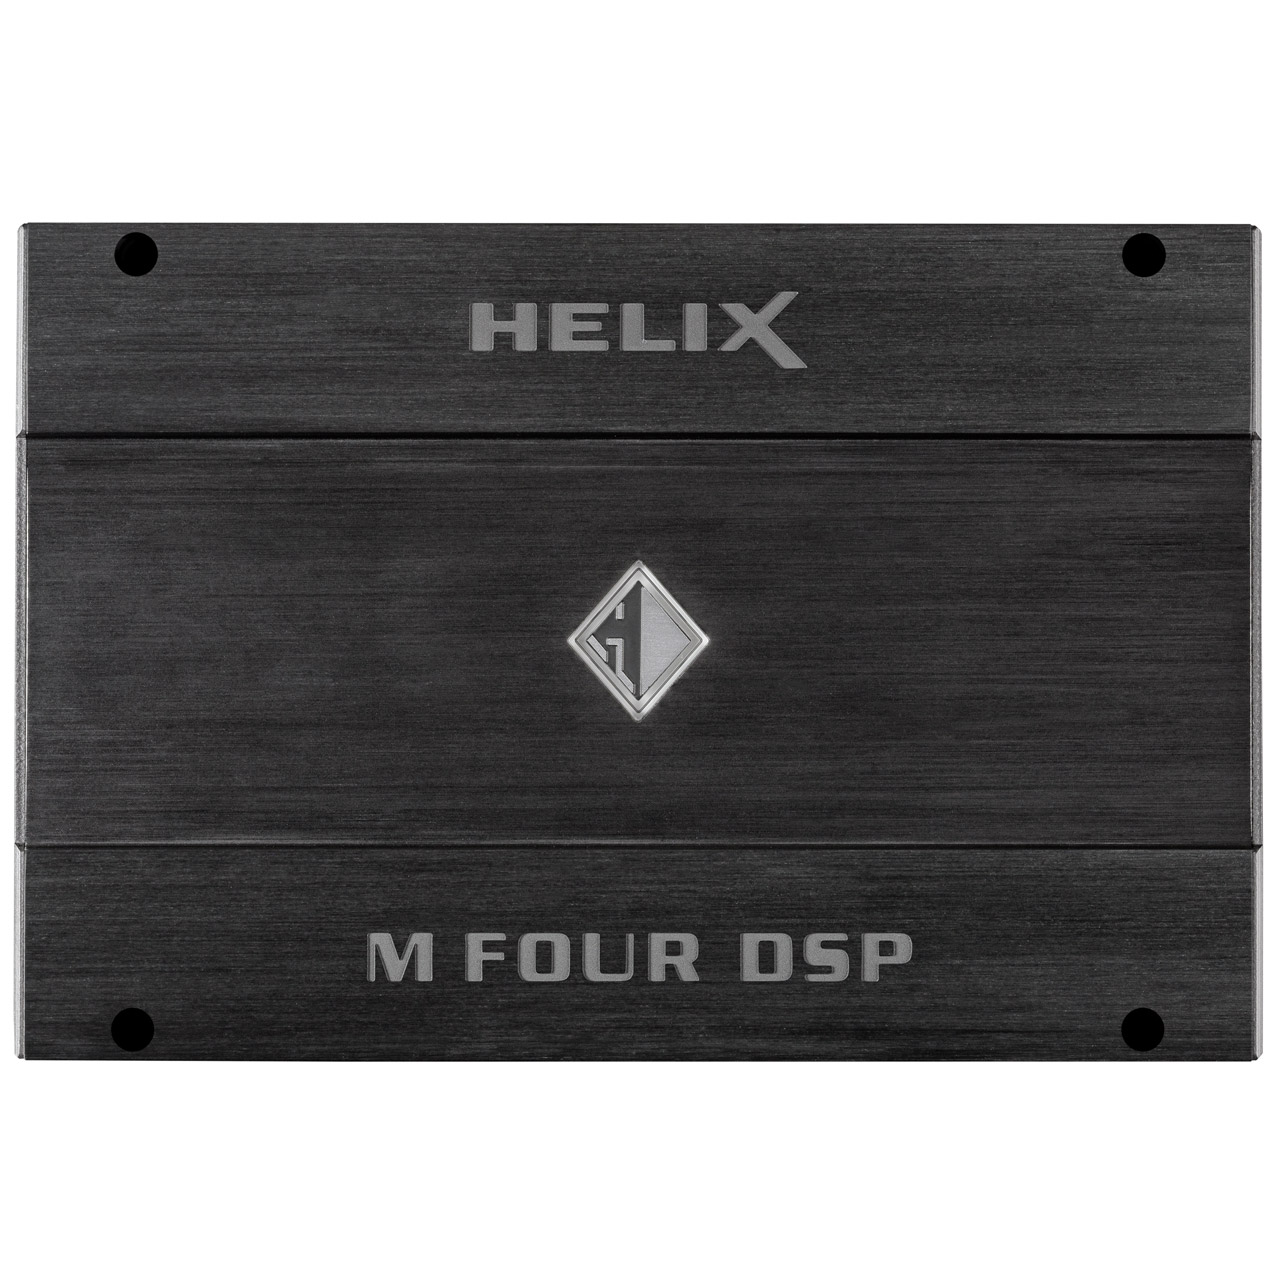 HELIX_M-FOUR-DSP_Front-top-side_1280x128